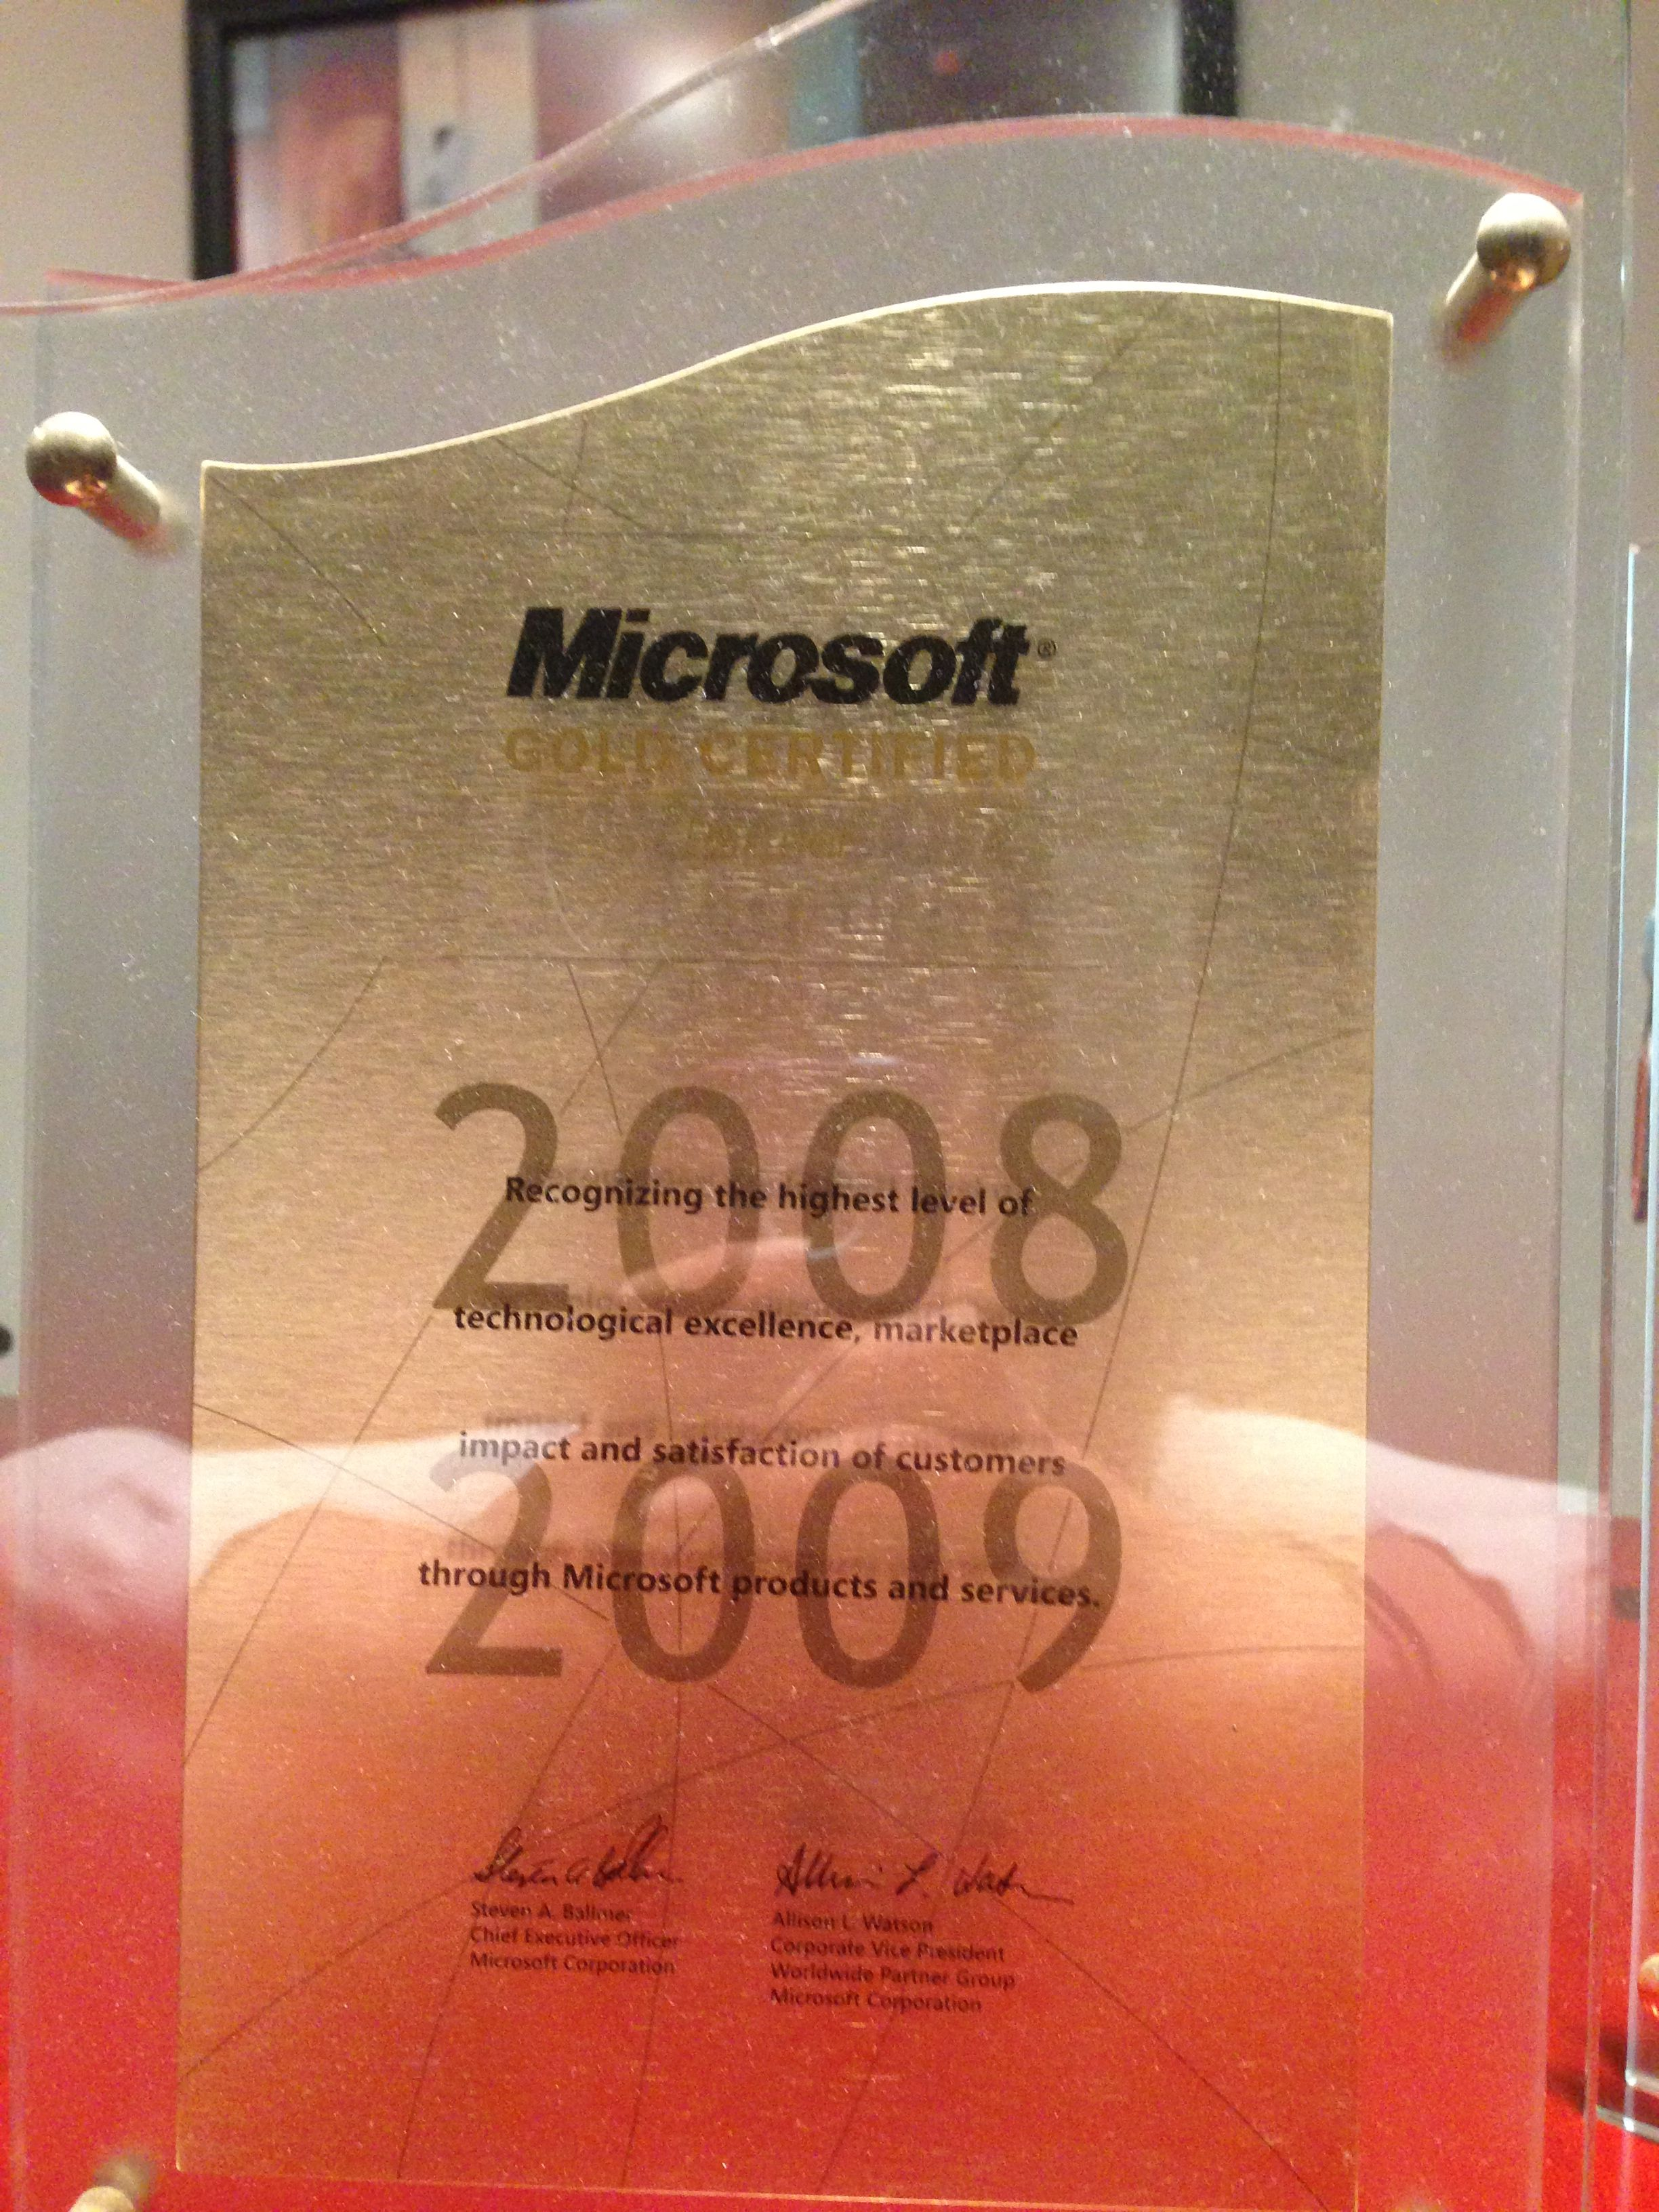 Microsoft Gold Certified Partner 20082009 In the years